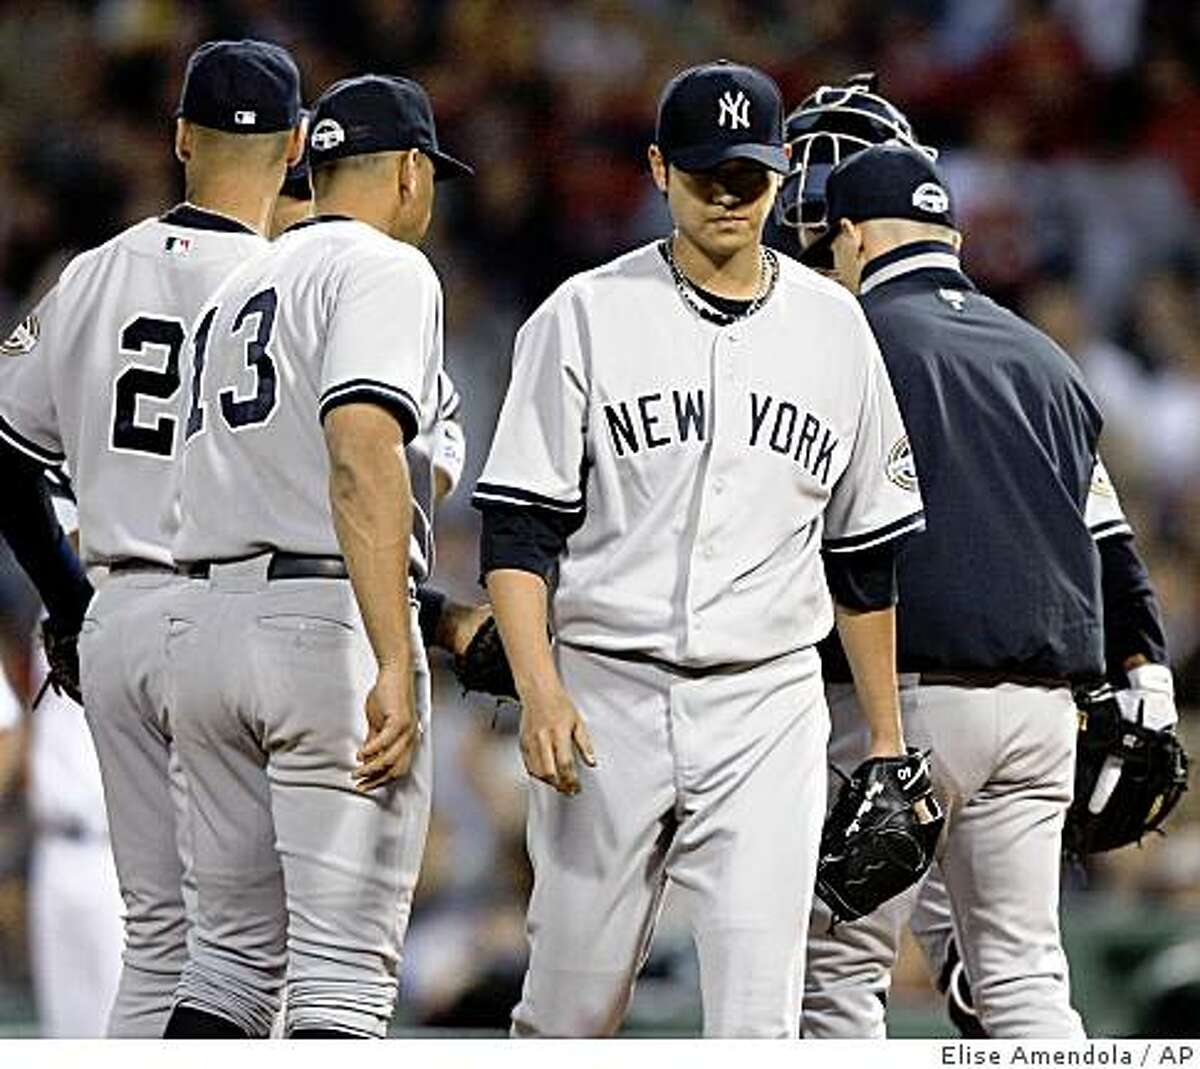 New York Yankees starting pitcher Chien-Ming Wang departs in the third inning against the Boston Red Sox during a baseball game at Fenway Park in Boston on Wednesday, June 10, 2009. (AP Photo/Elise Amendola)